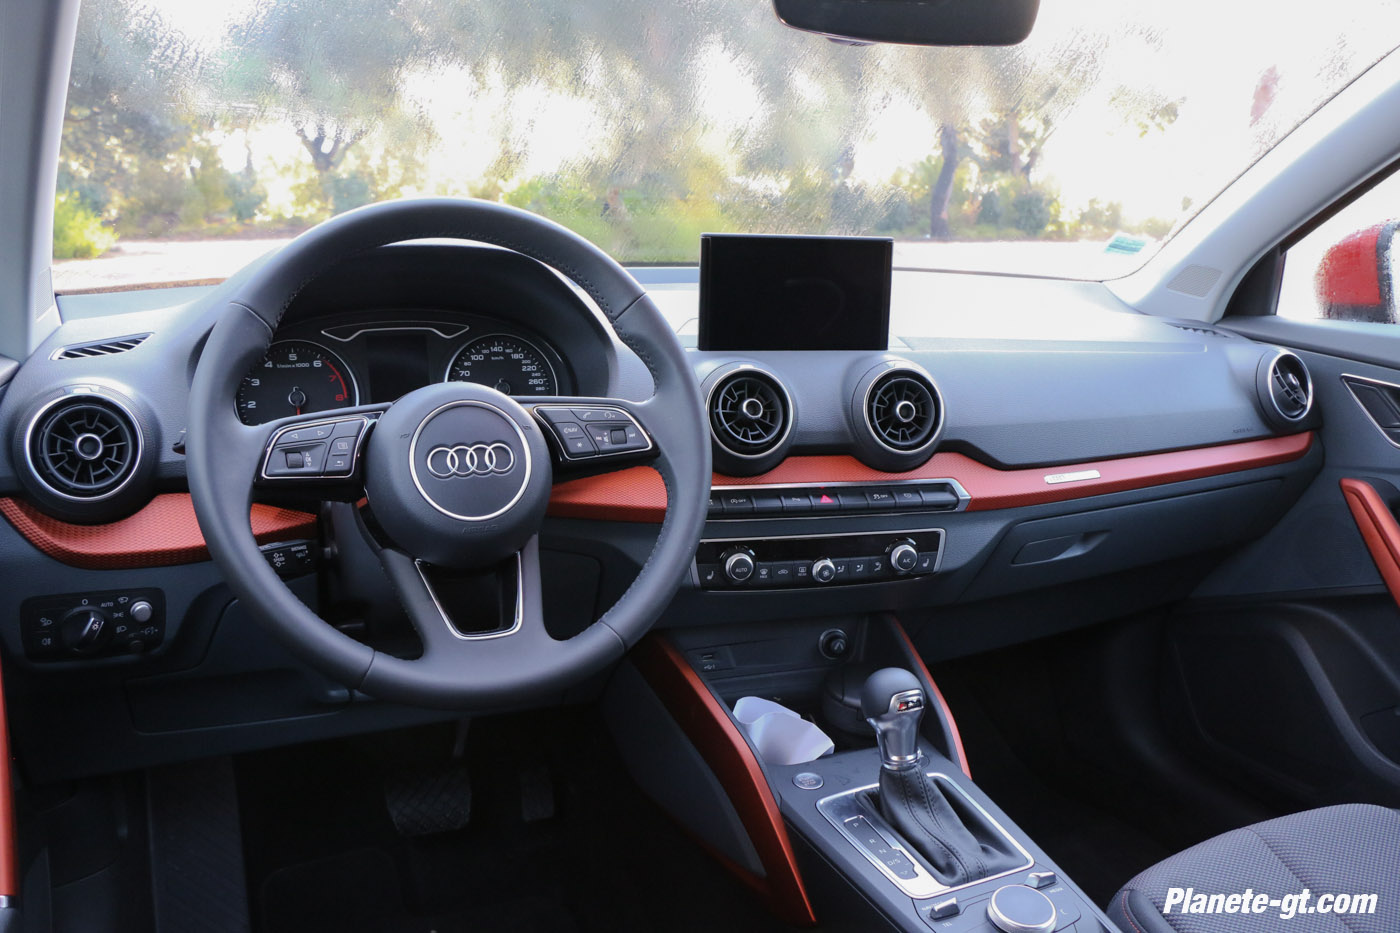 essai video audi q2 interieur virtual cockpit 14 plan te. Black Bedroom Furniture Sets. Home Design Ideas